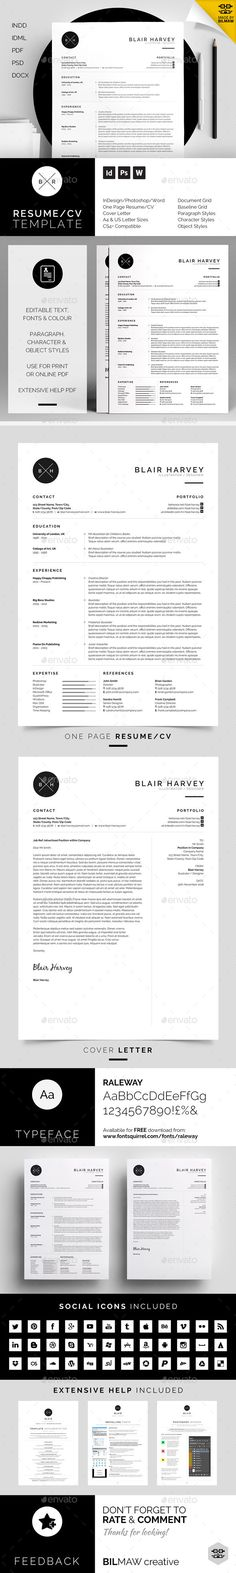 Resume/CV & Cover letter template. Includes 90 social icons. Minimalist design.  MS Word - Photoshop - inDesign